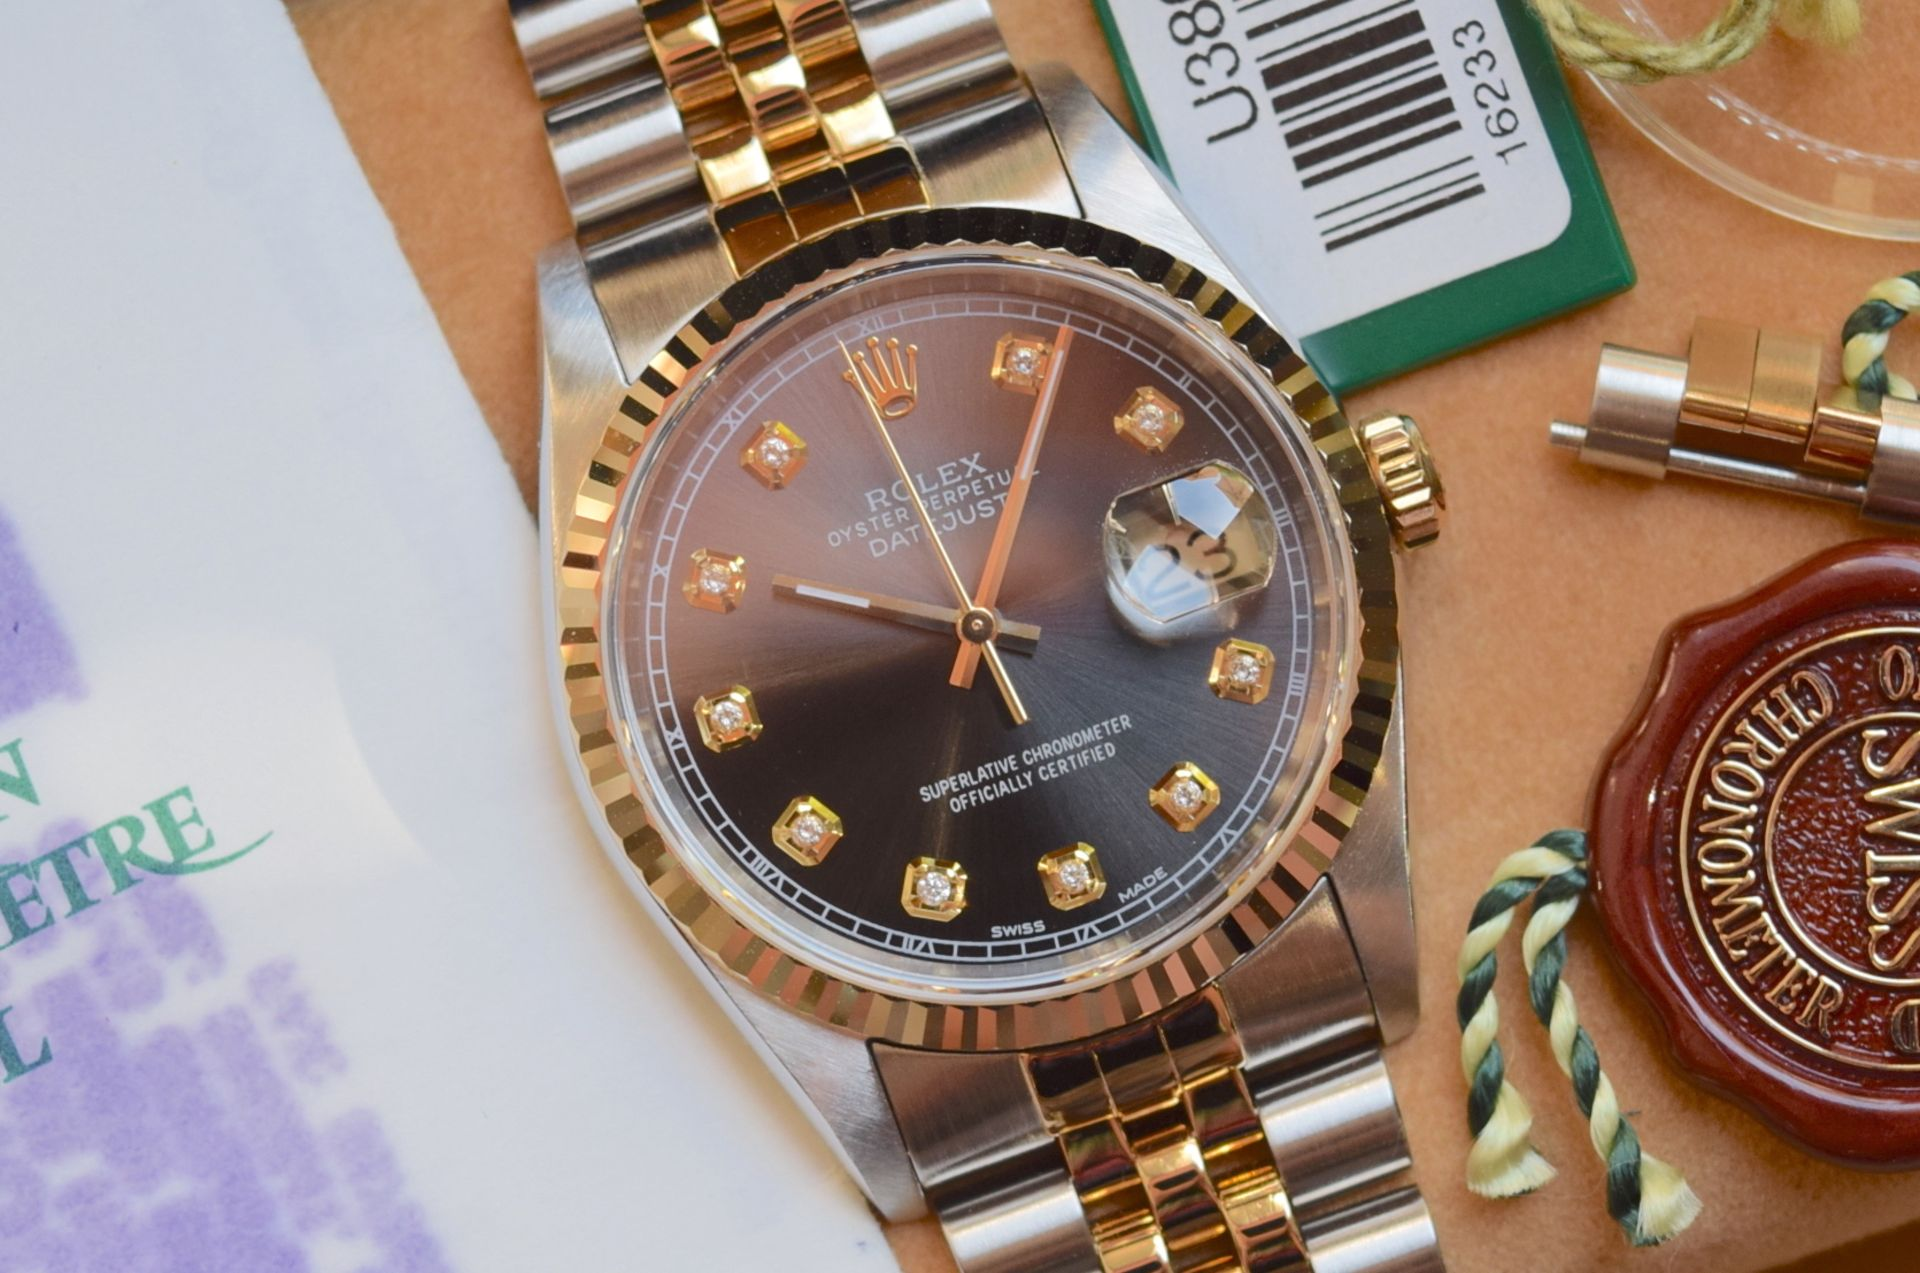 18CT GOLD/ STEEL ROLEX DATEJUST - 36MM, MENS (COMPLETE SET INC BOX, PAPERS, TAGS ETC)